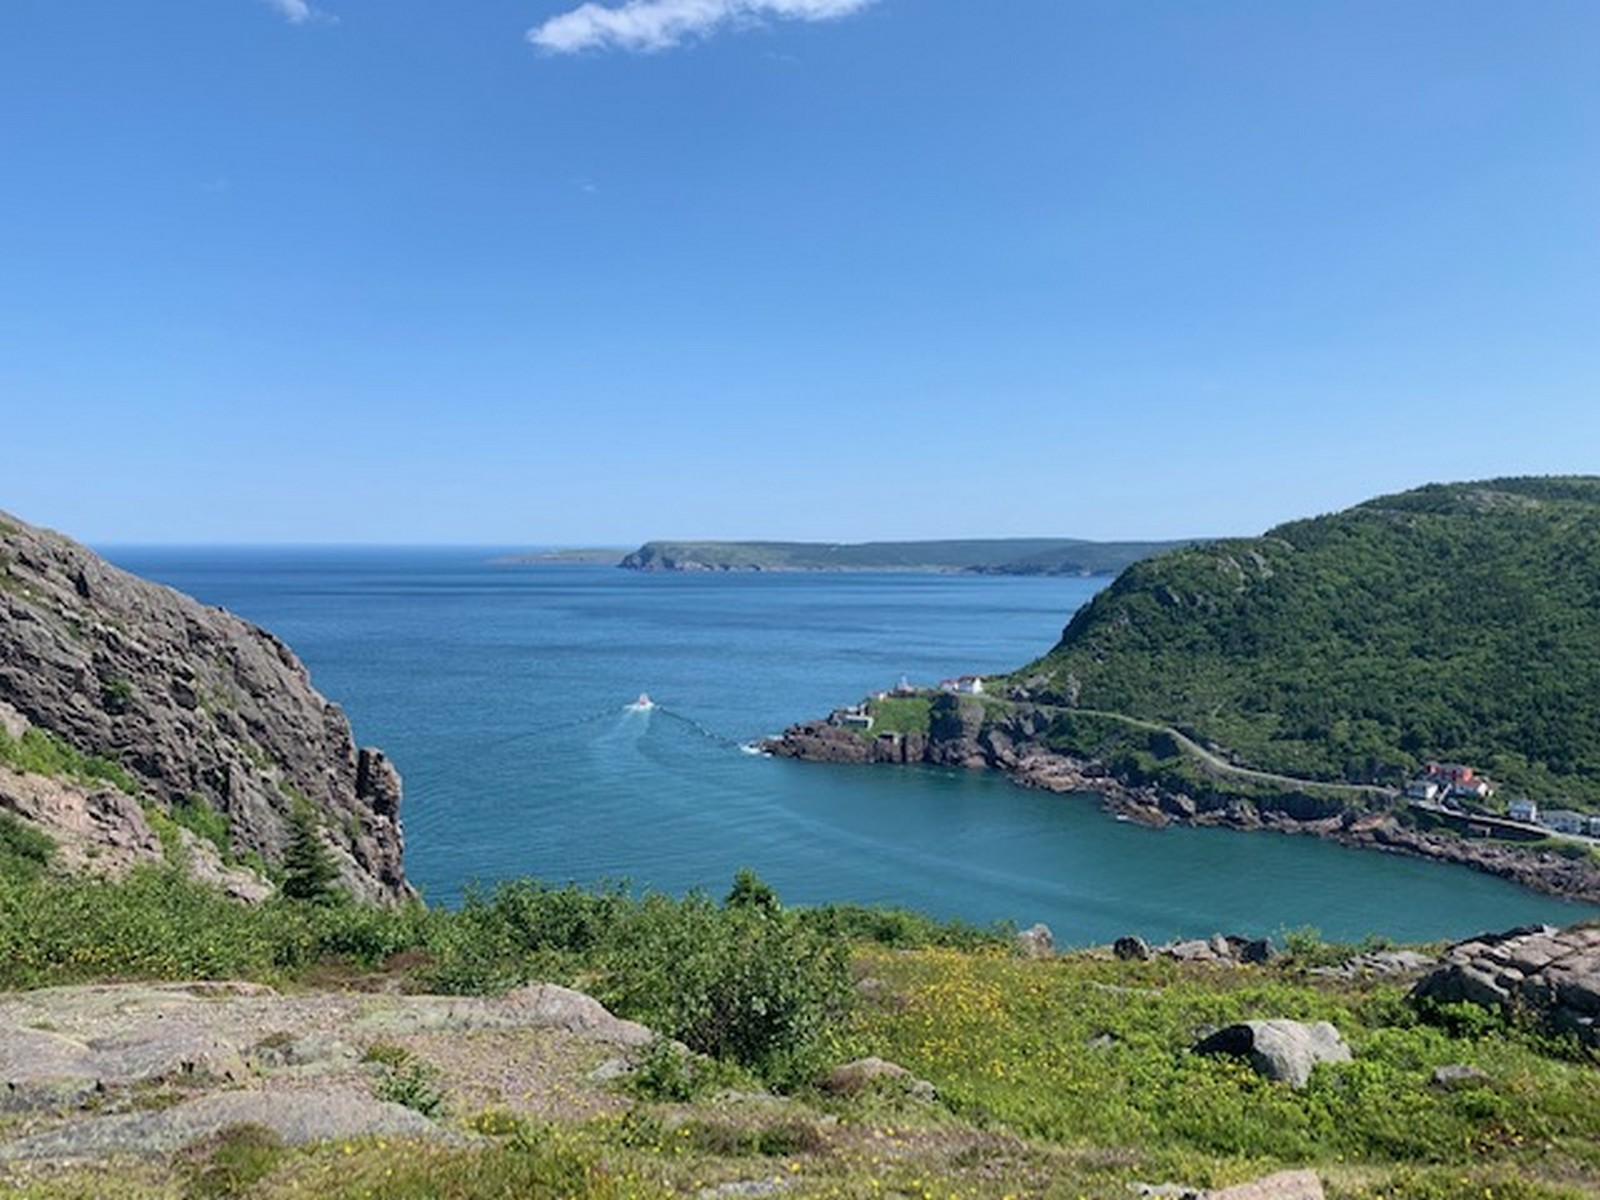 Two Days In St. John's Newfoundland